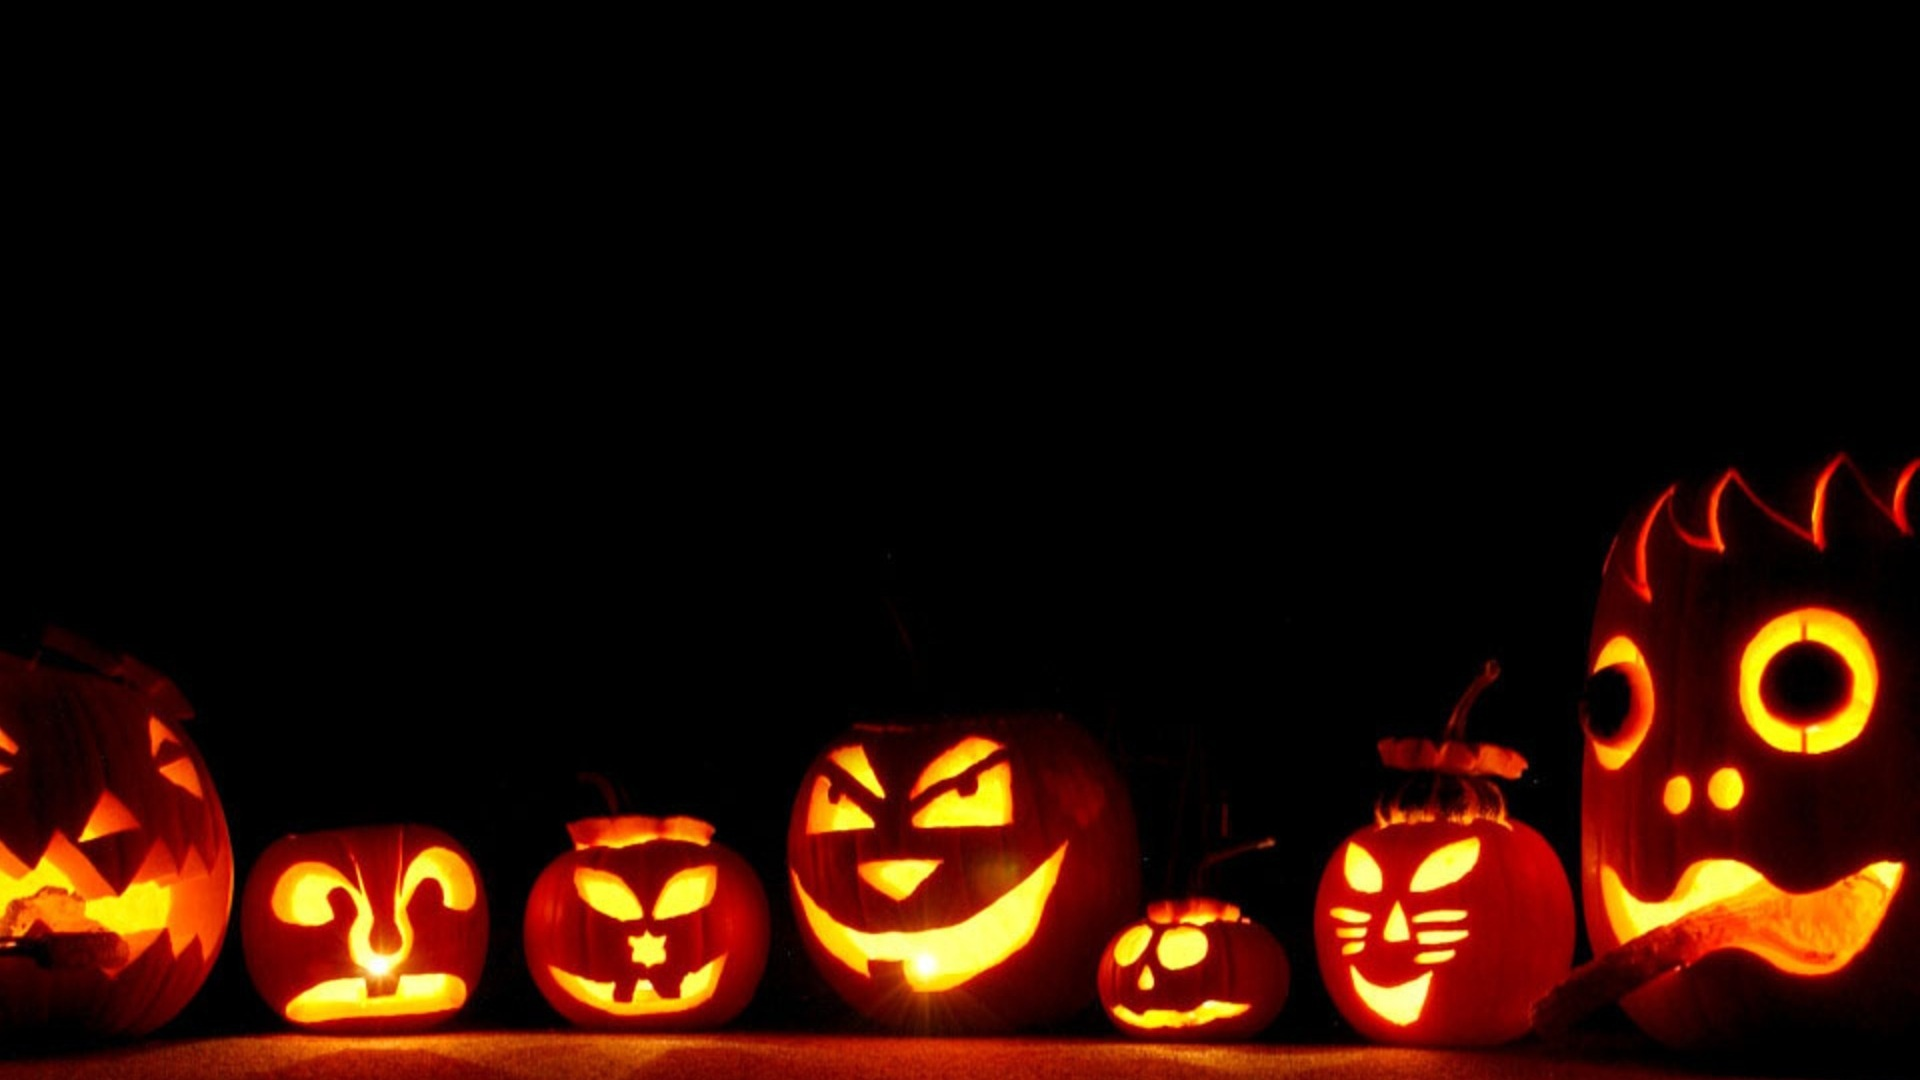 Free Halloween Computer Wallpaper Backgrounds, Mobile Compatible ...